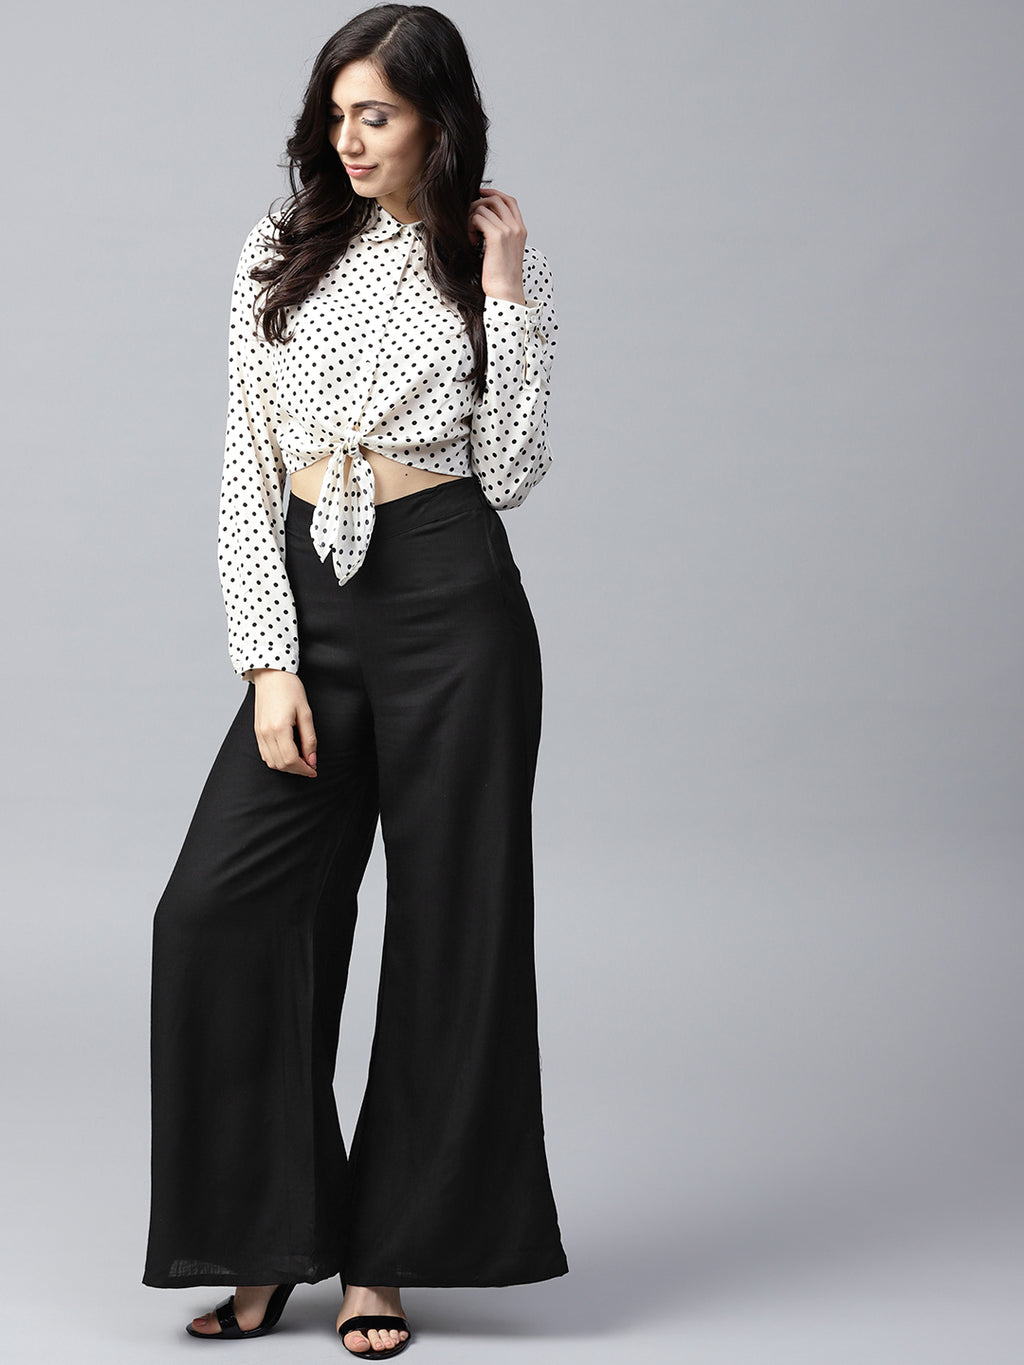 Black Solid Flared Palazzos | Znx4ever.com